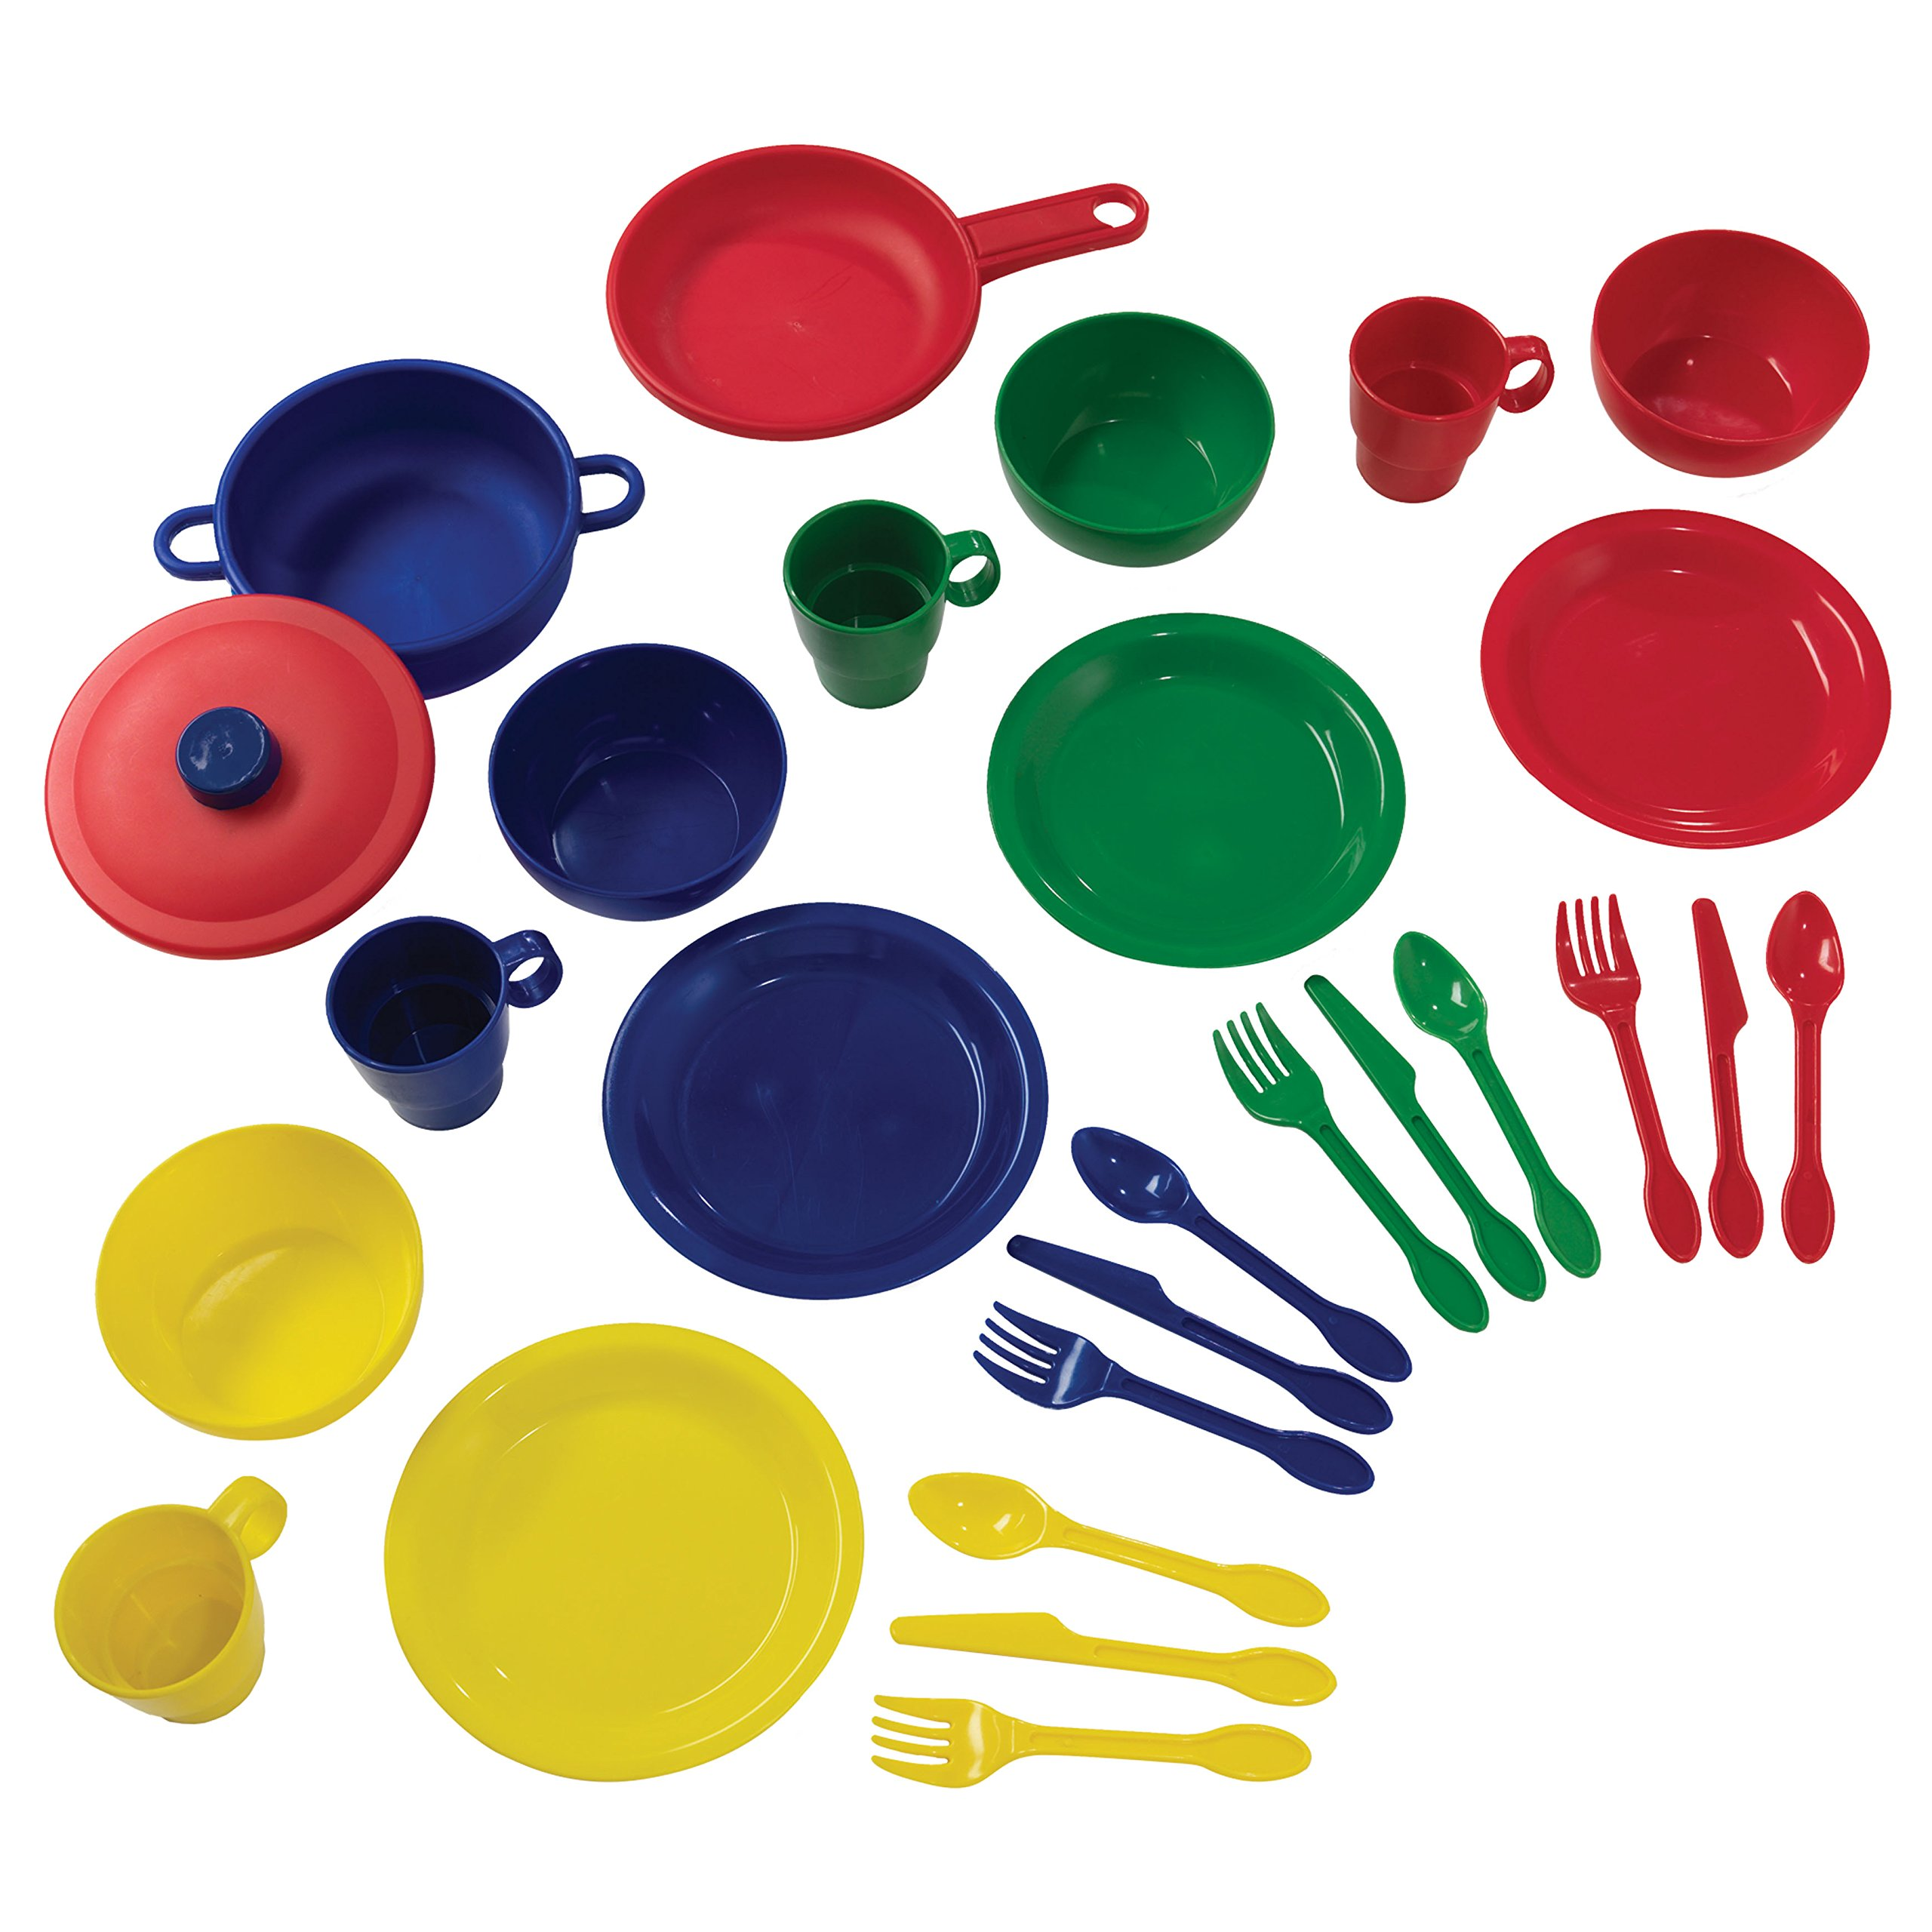 KidKraft 27Piece Cookware Playset - Primary, 6.5'' x 6.5'' x 6.5'', Multicolor by KidKraft